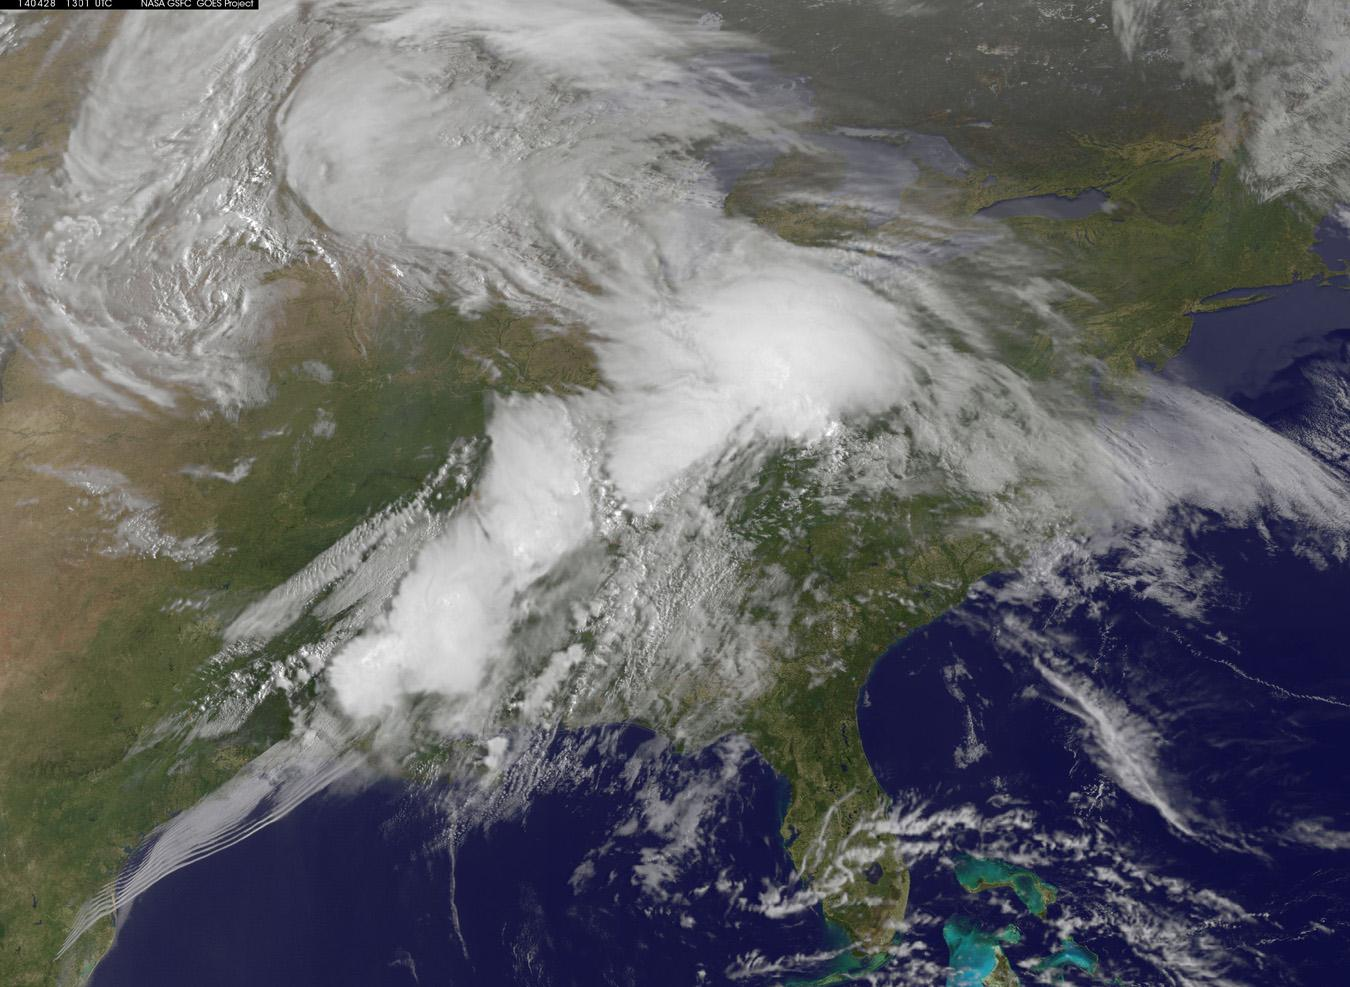 Image: Satellite view of storms